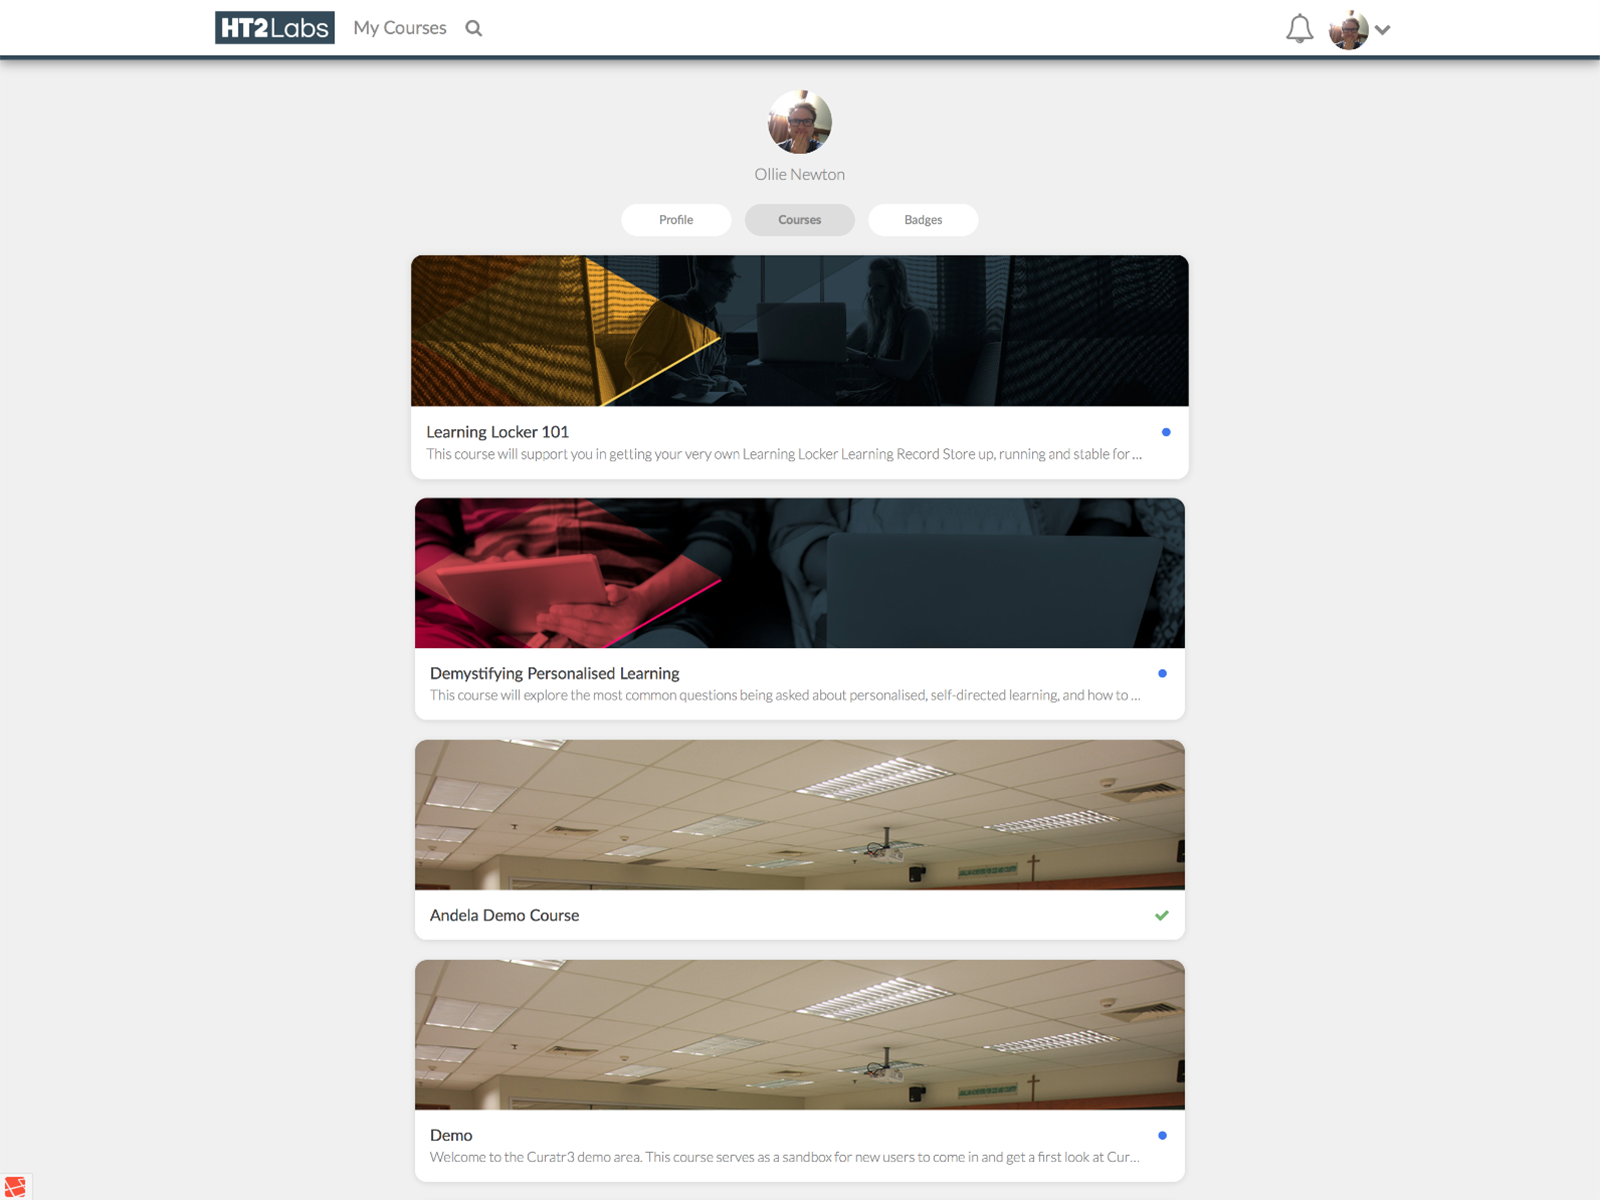 Curatr courses page